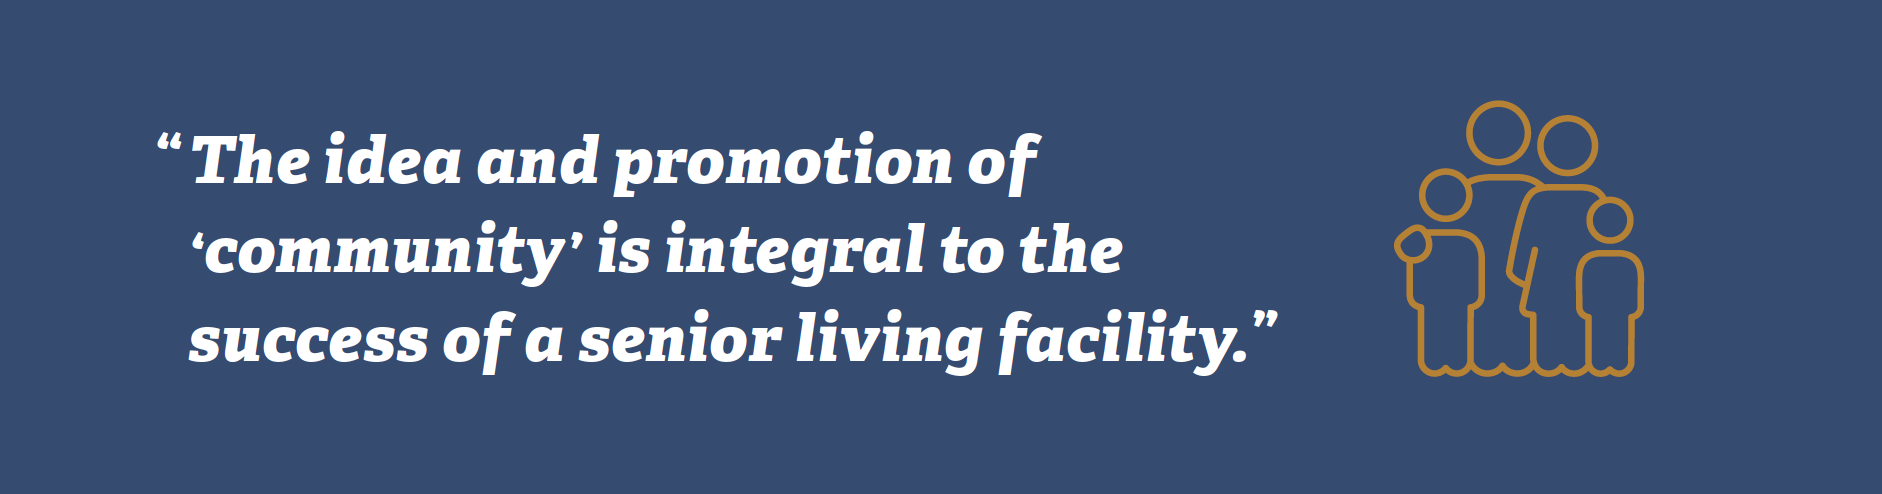 The idea and promotion of 'community' is integral to the success of a senior living facility.